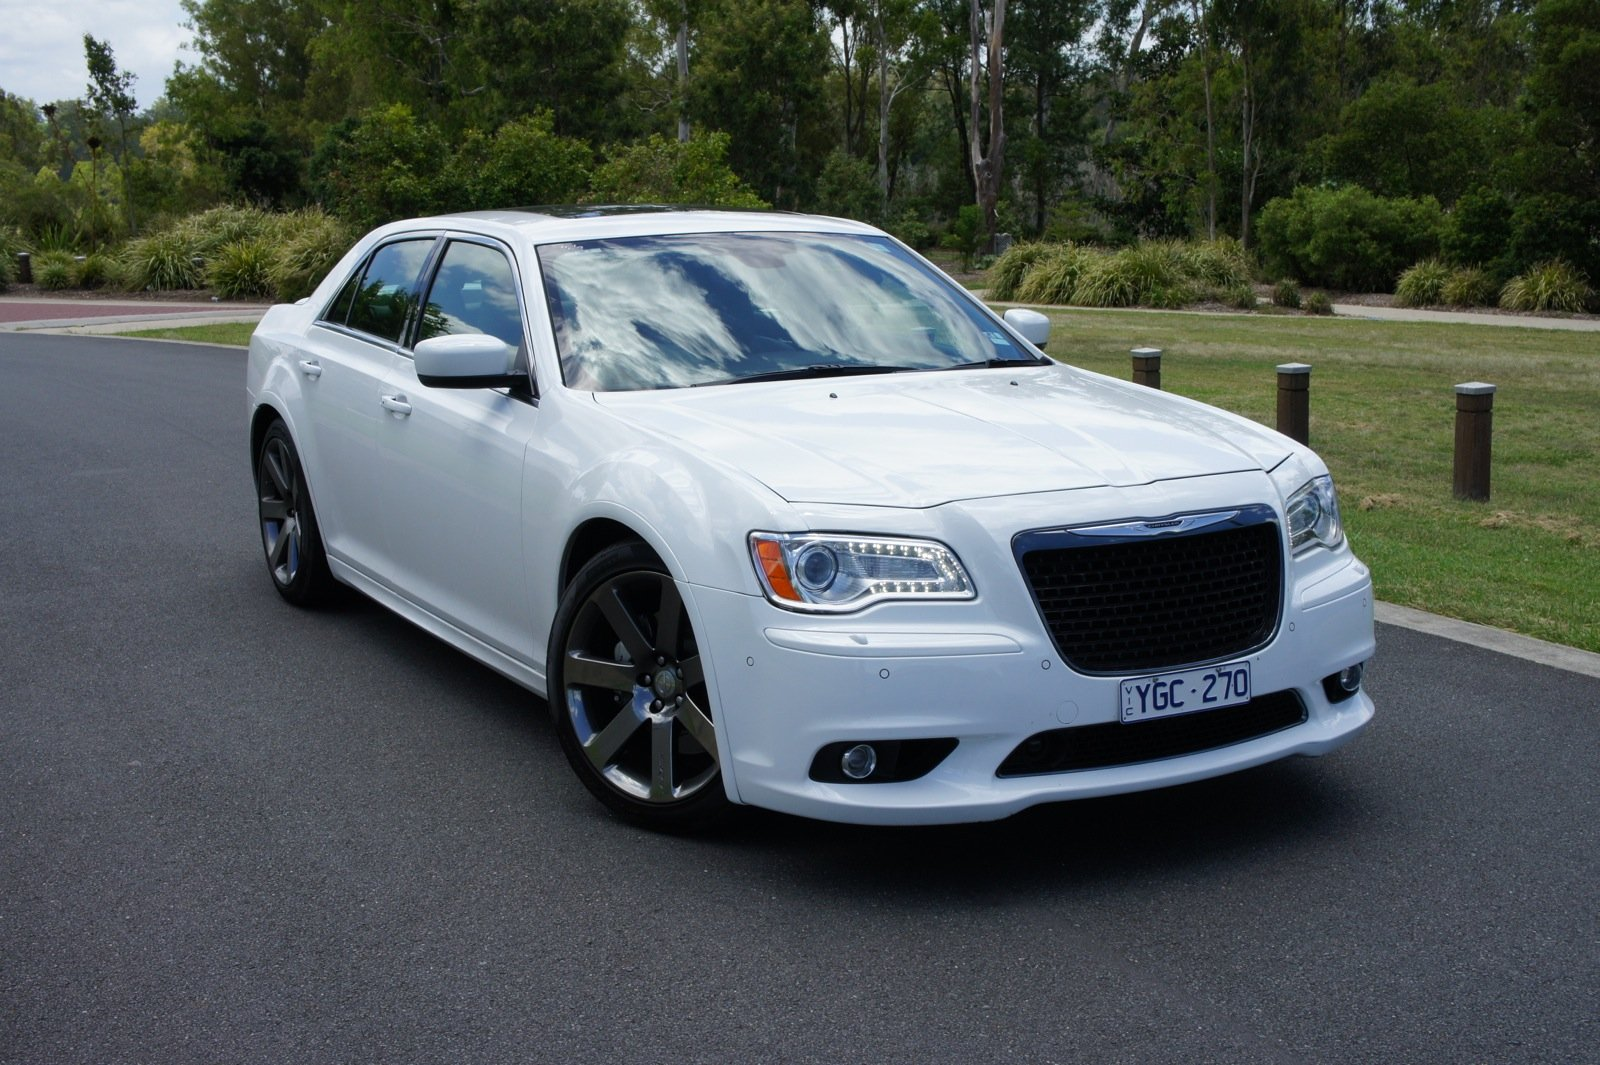 chrysler 300 srt8 review photos caradvice. Black Bedroom Furniture Sets. Home Design Ideas